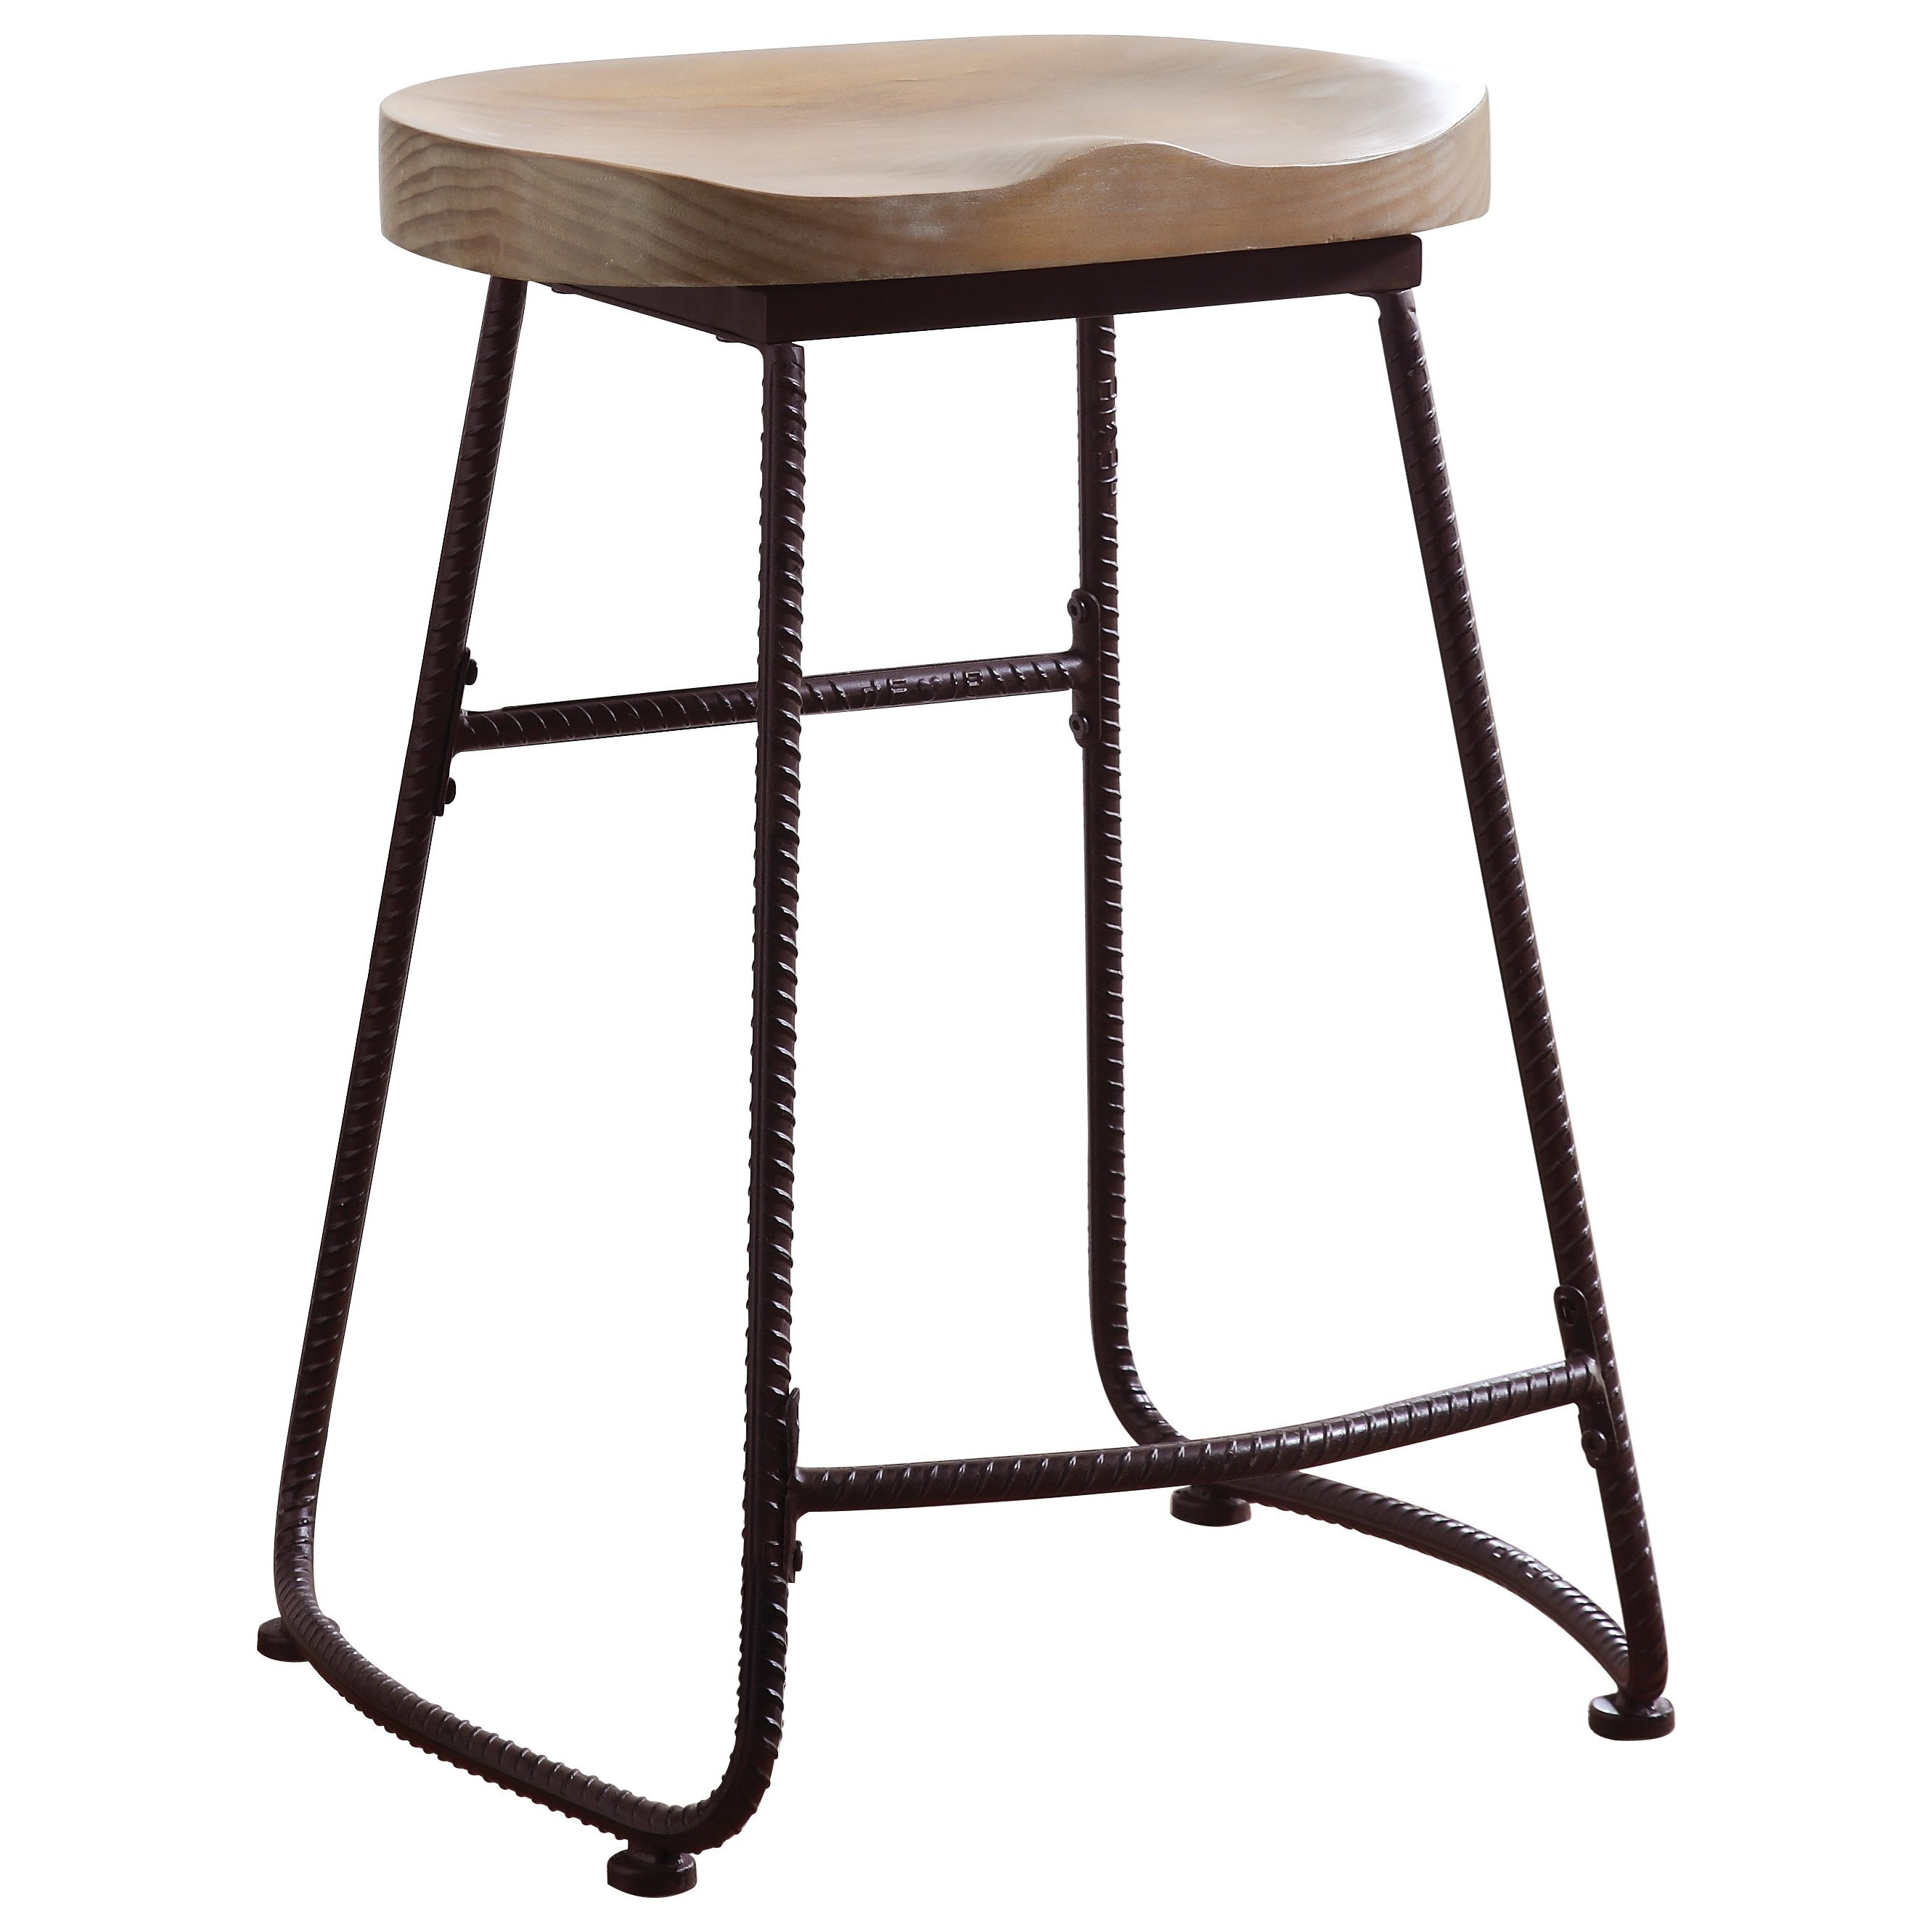 Bar Height Dining Chairs Coaster Dining Chairs And Bar Stools Rustic Counter Height